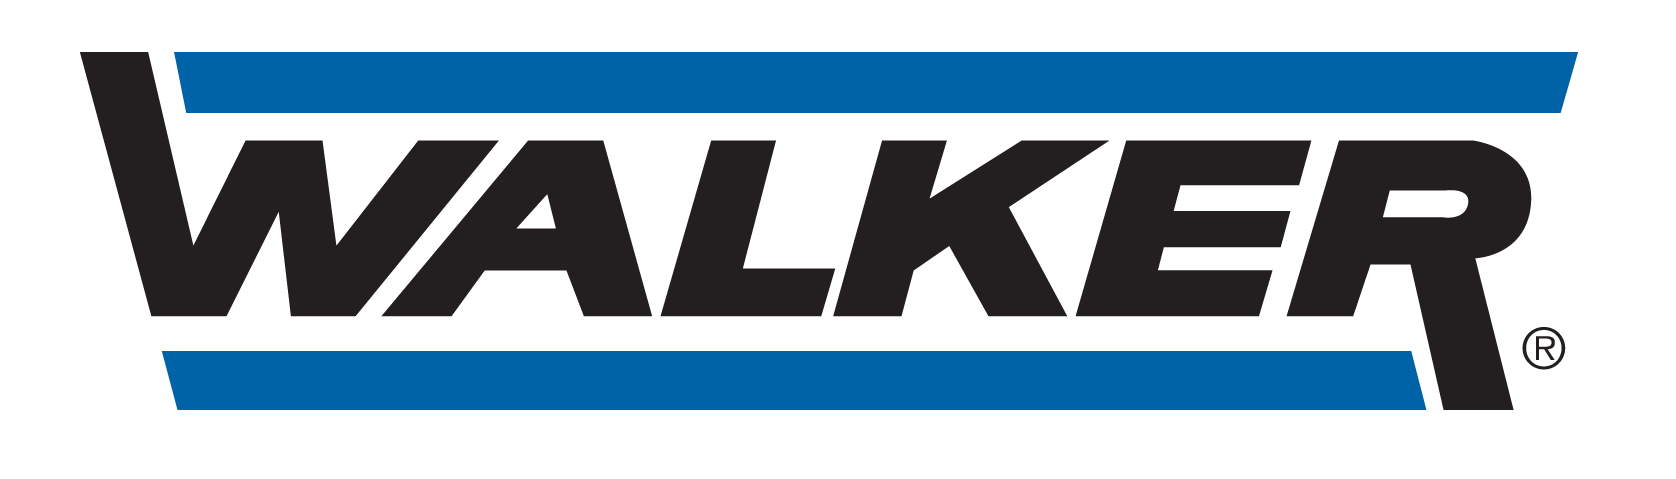 GARAGE CAR CENTRE - logo Walker